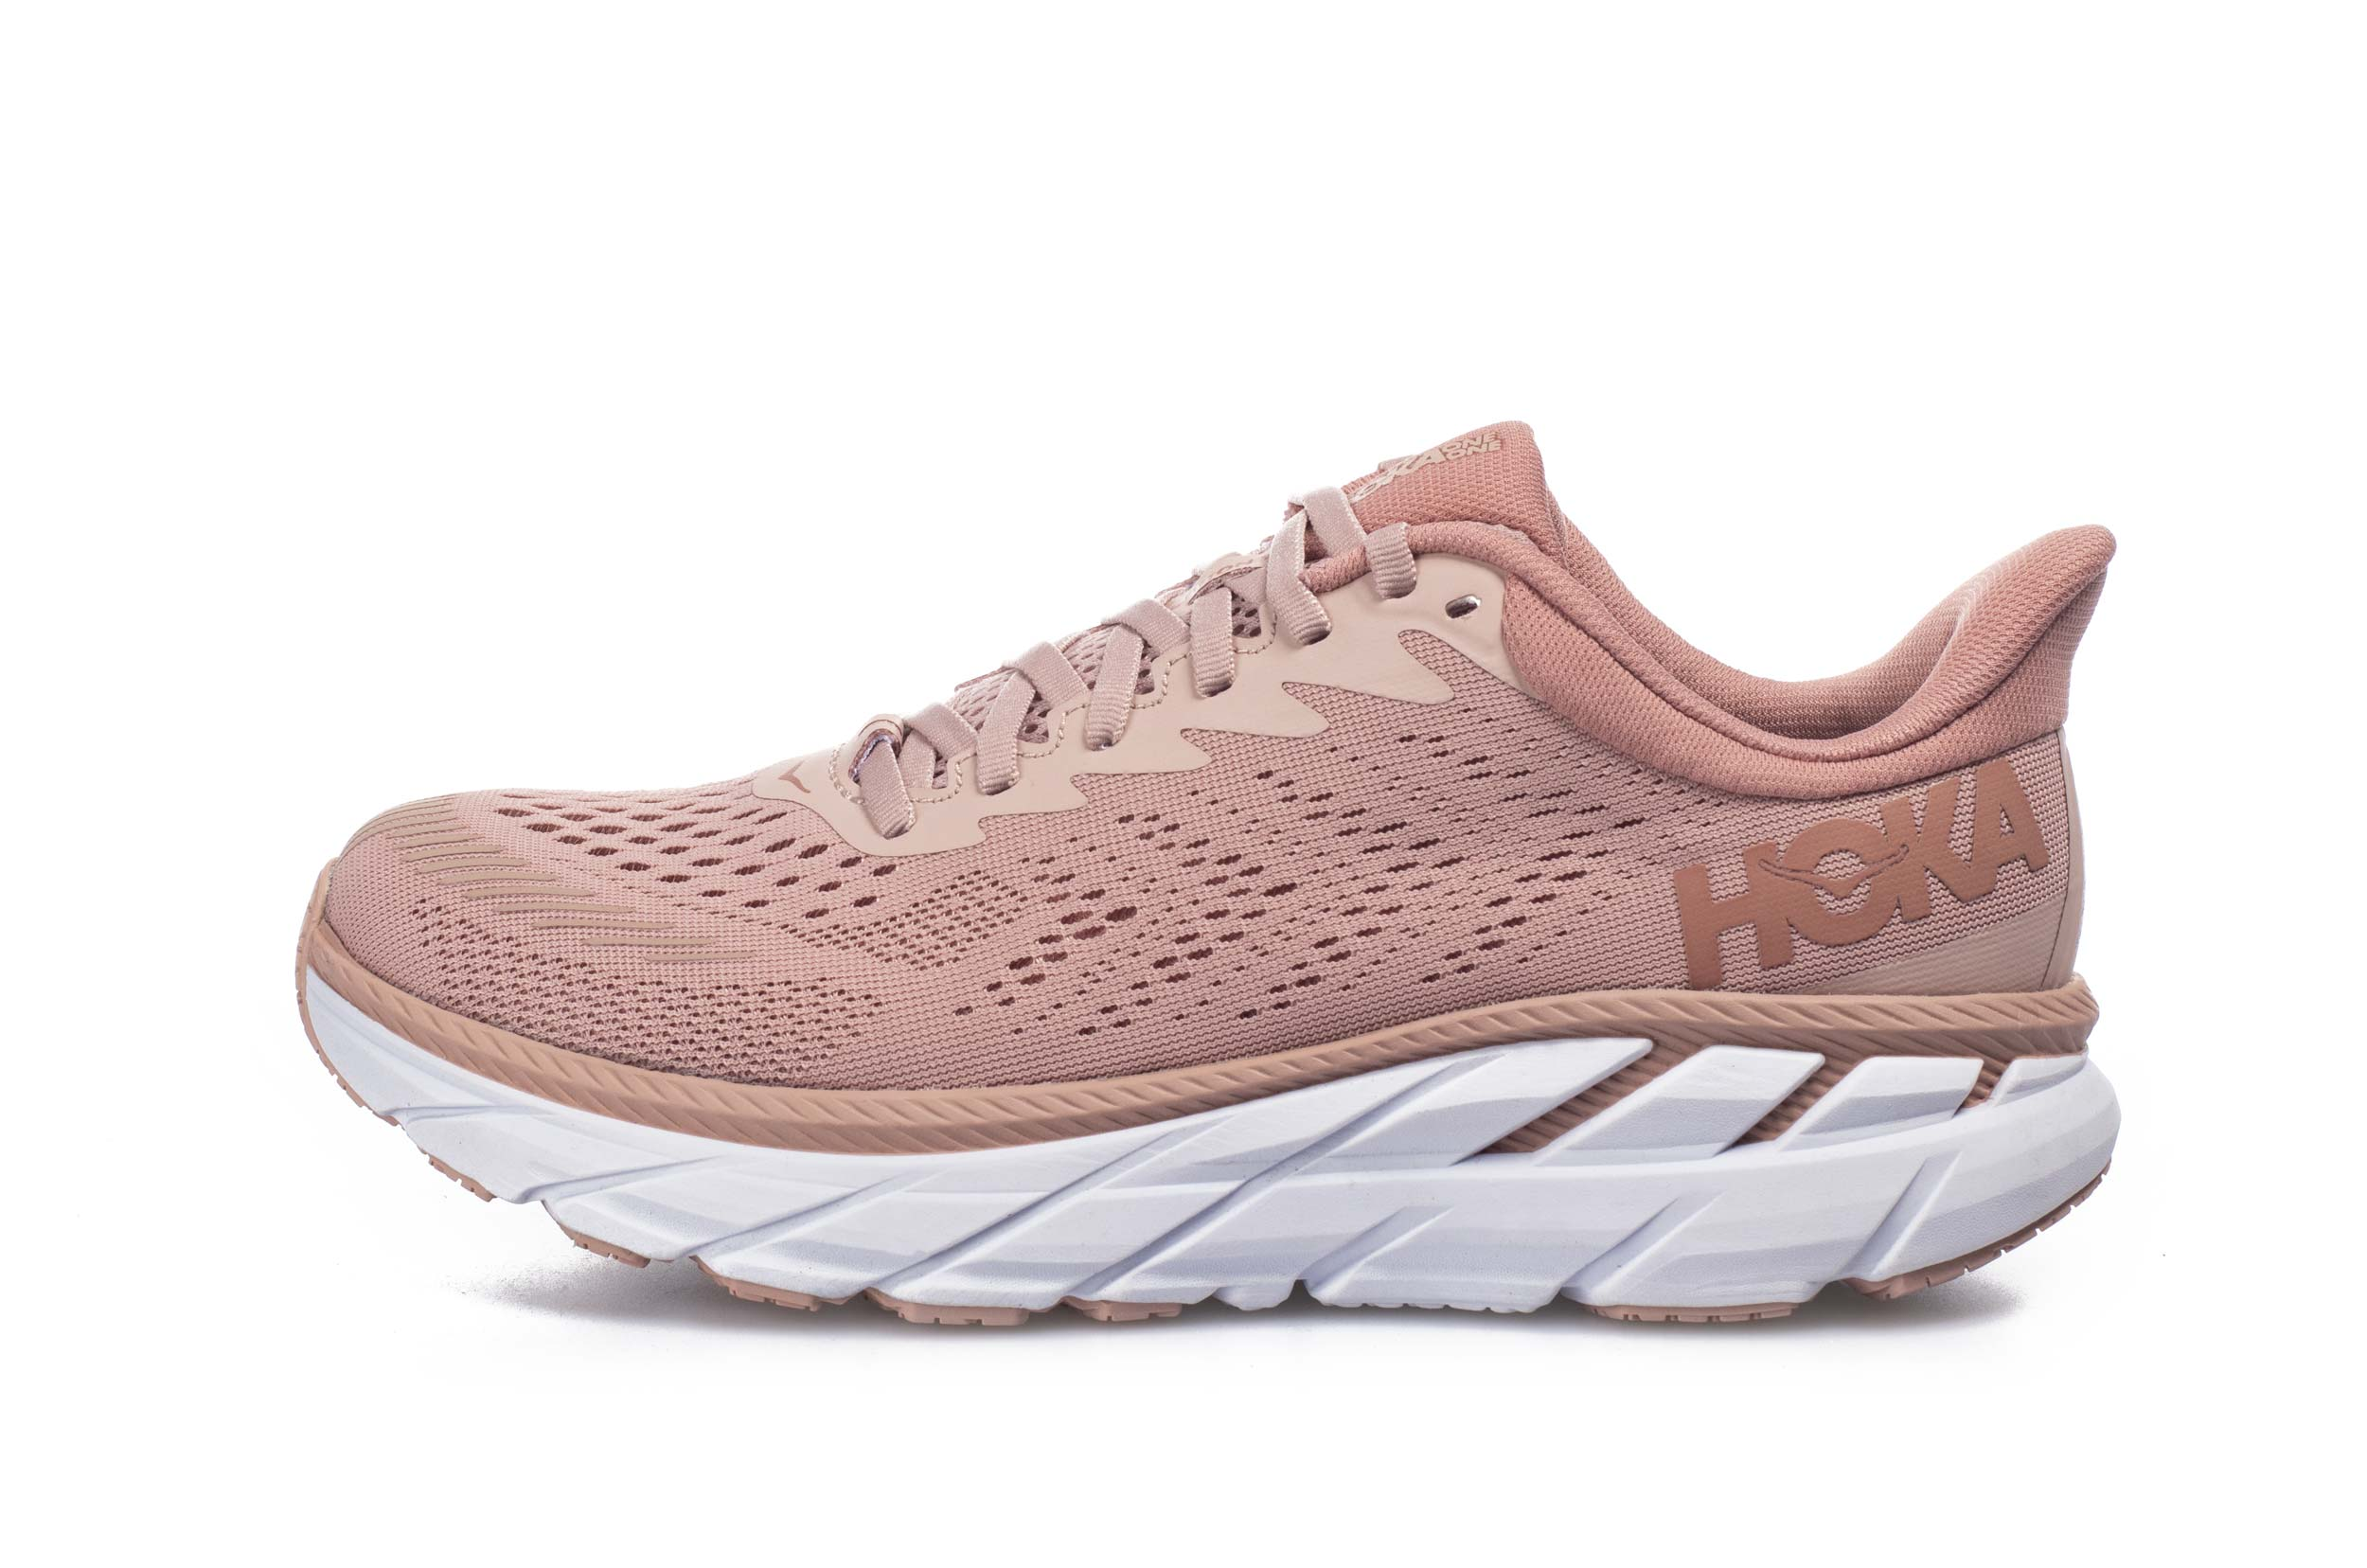 HOKA ONE ONE CLIFTON 7 WO 1110509-MRCB Σομόν